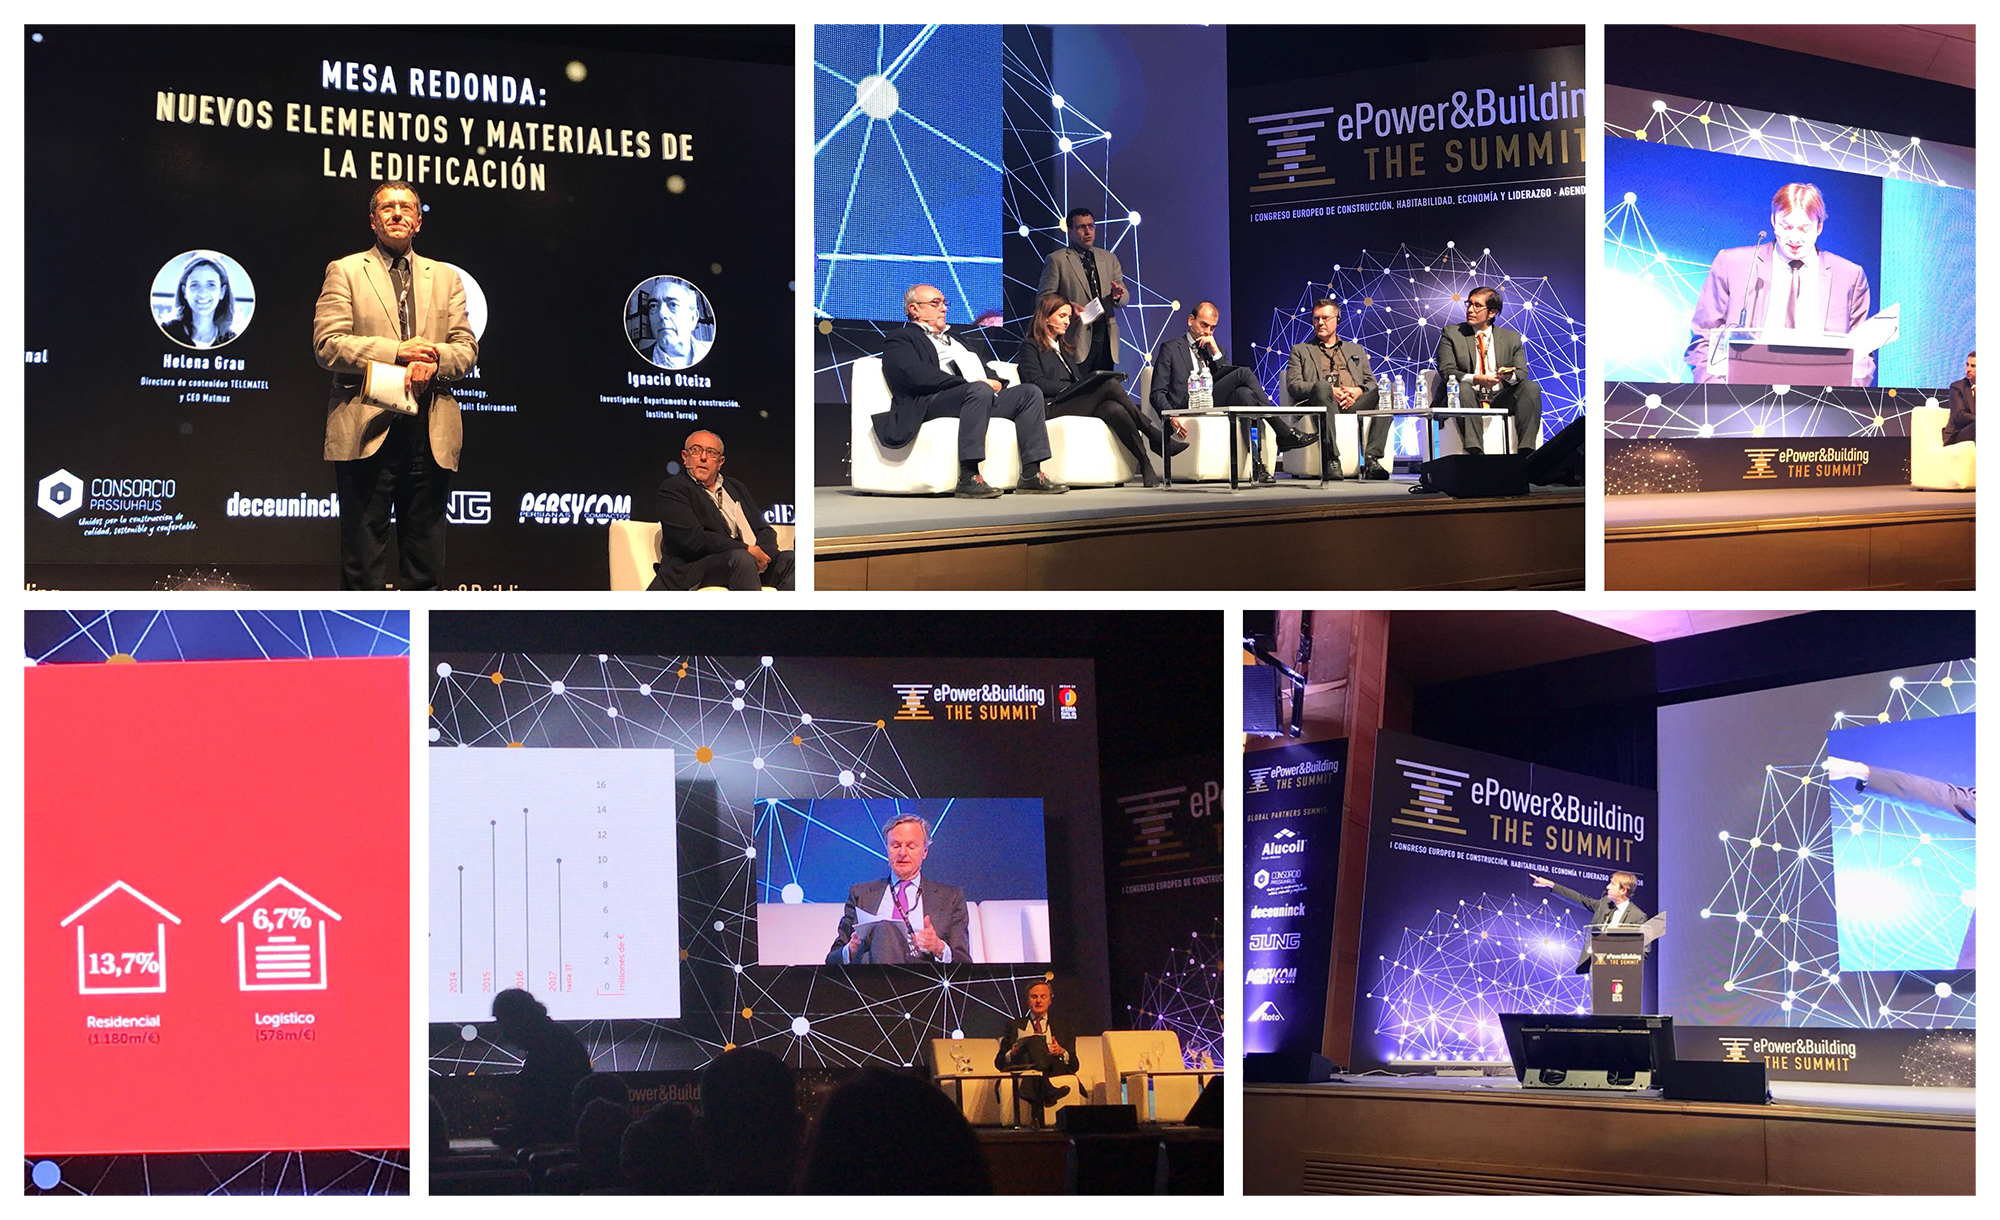 epower & building THE SUMMIT, resumen de la primera jornada